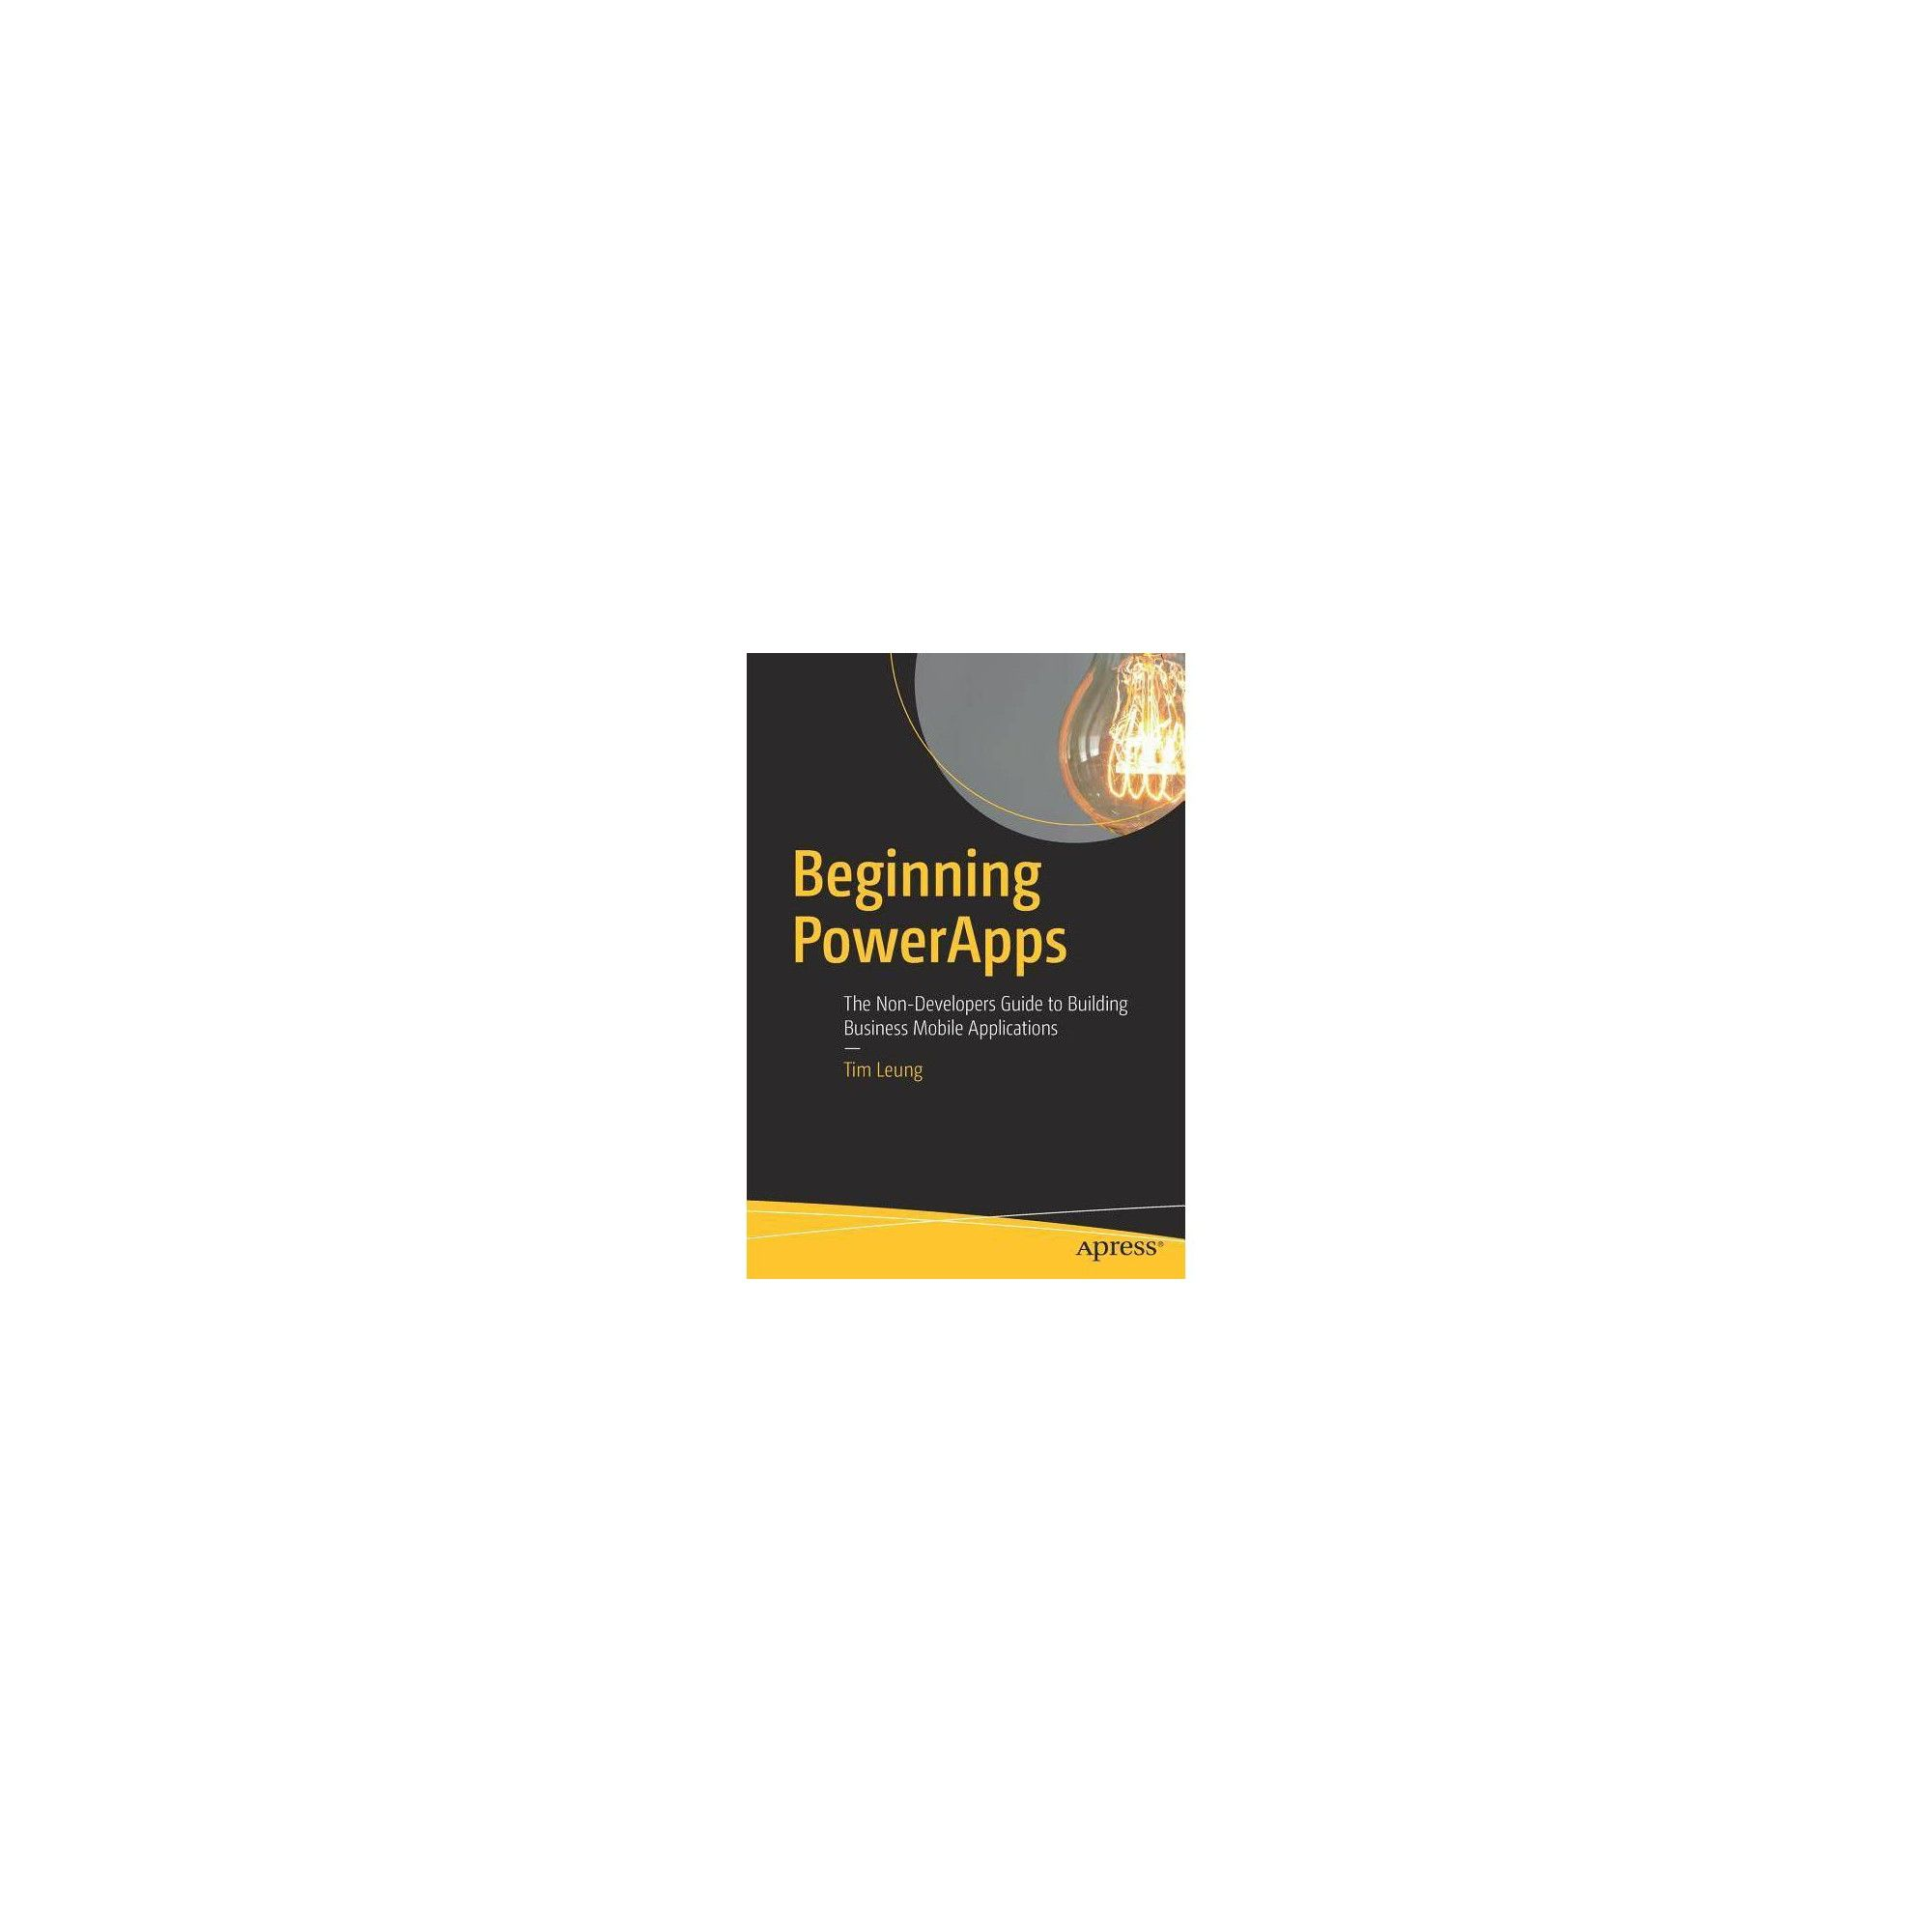 Beginning Powerapps - by Tim Leung (Paperback) | Products in